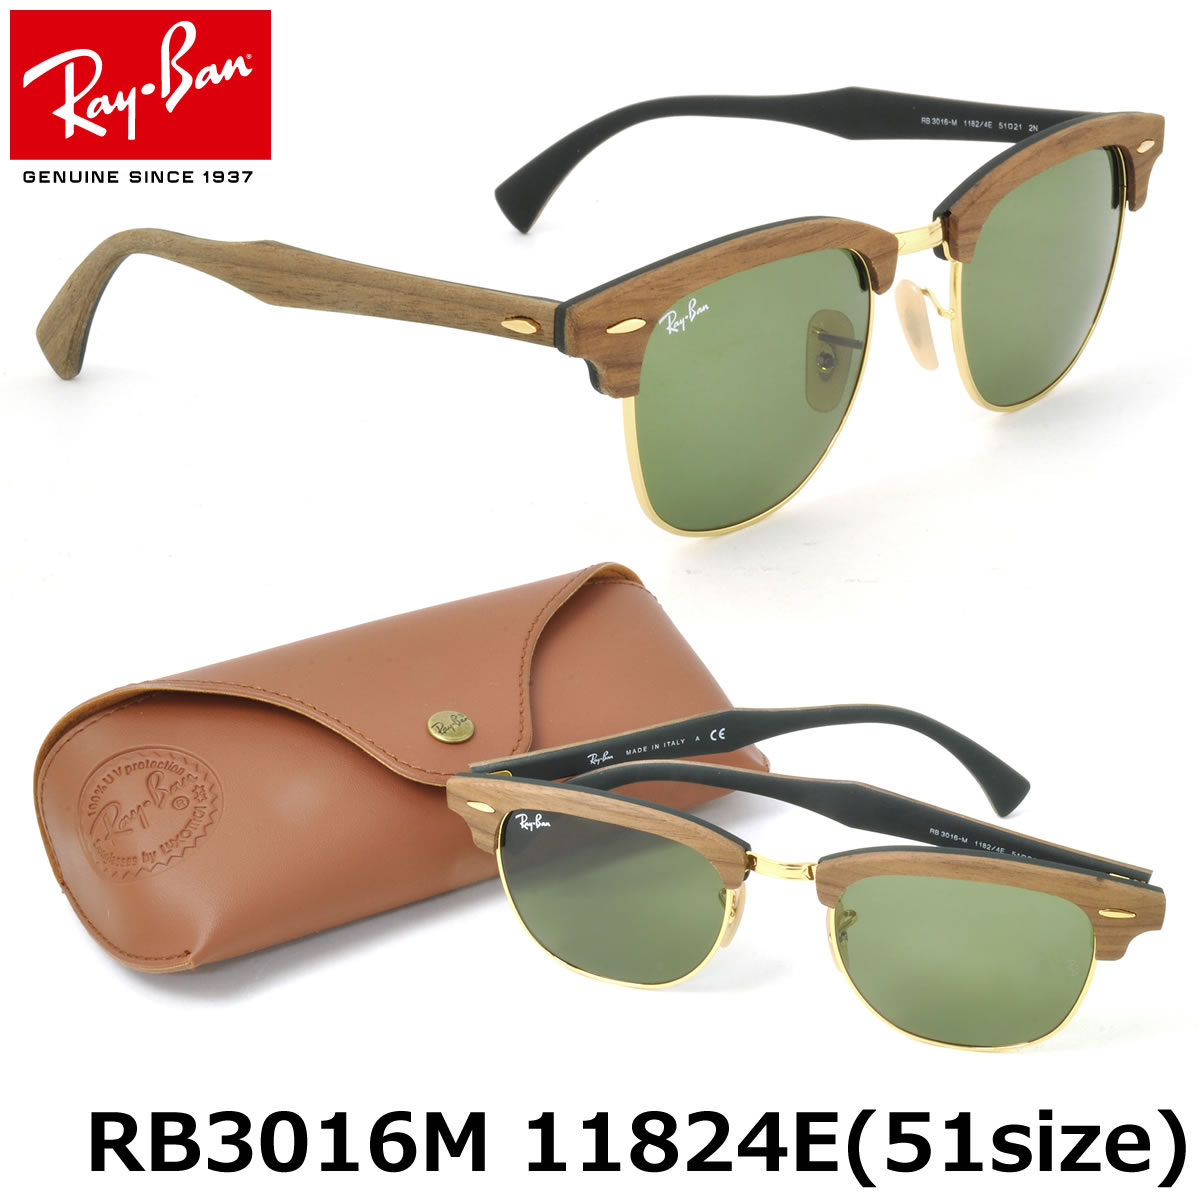 02413780139 Up to 10 6 (Thursday) 1 59 (Ray-Ban) Club master wood sunglasses  RB3016M11824E 51 size Ray Ban RAYBAN CLUBMASTER WOOD wooden men women